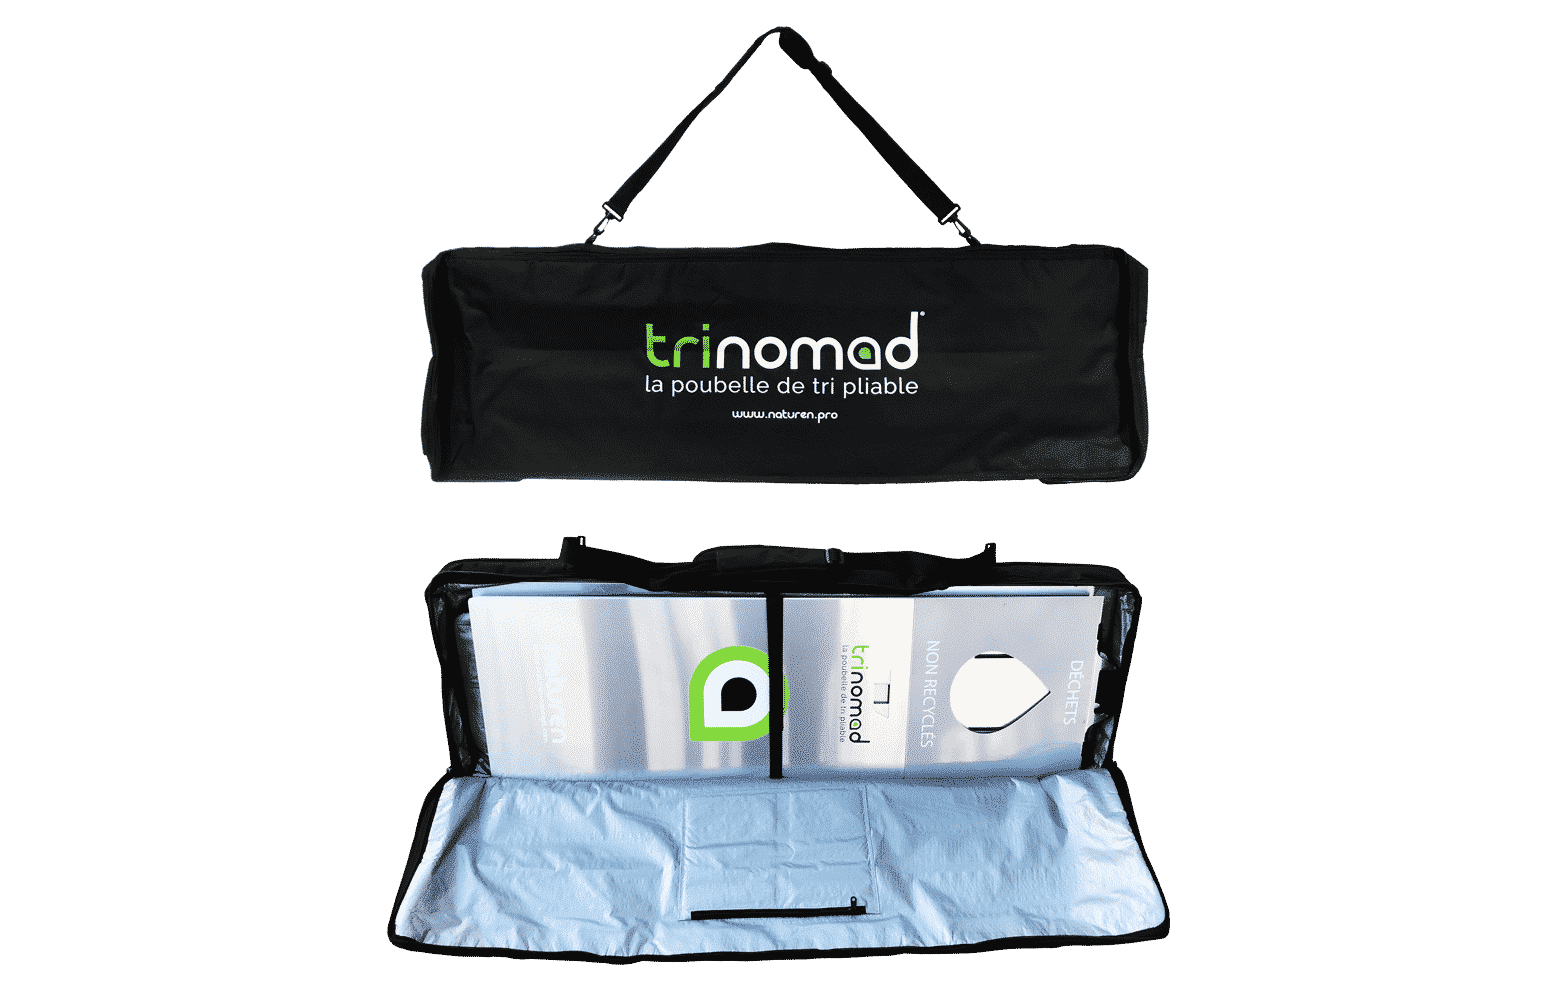 trinomad collapsible sorting bin bag